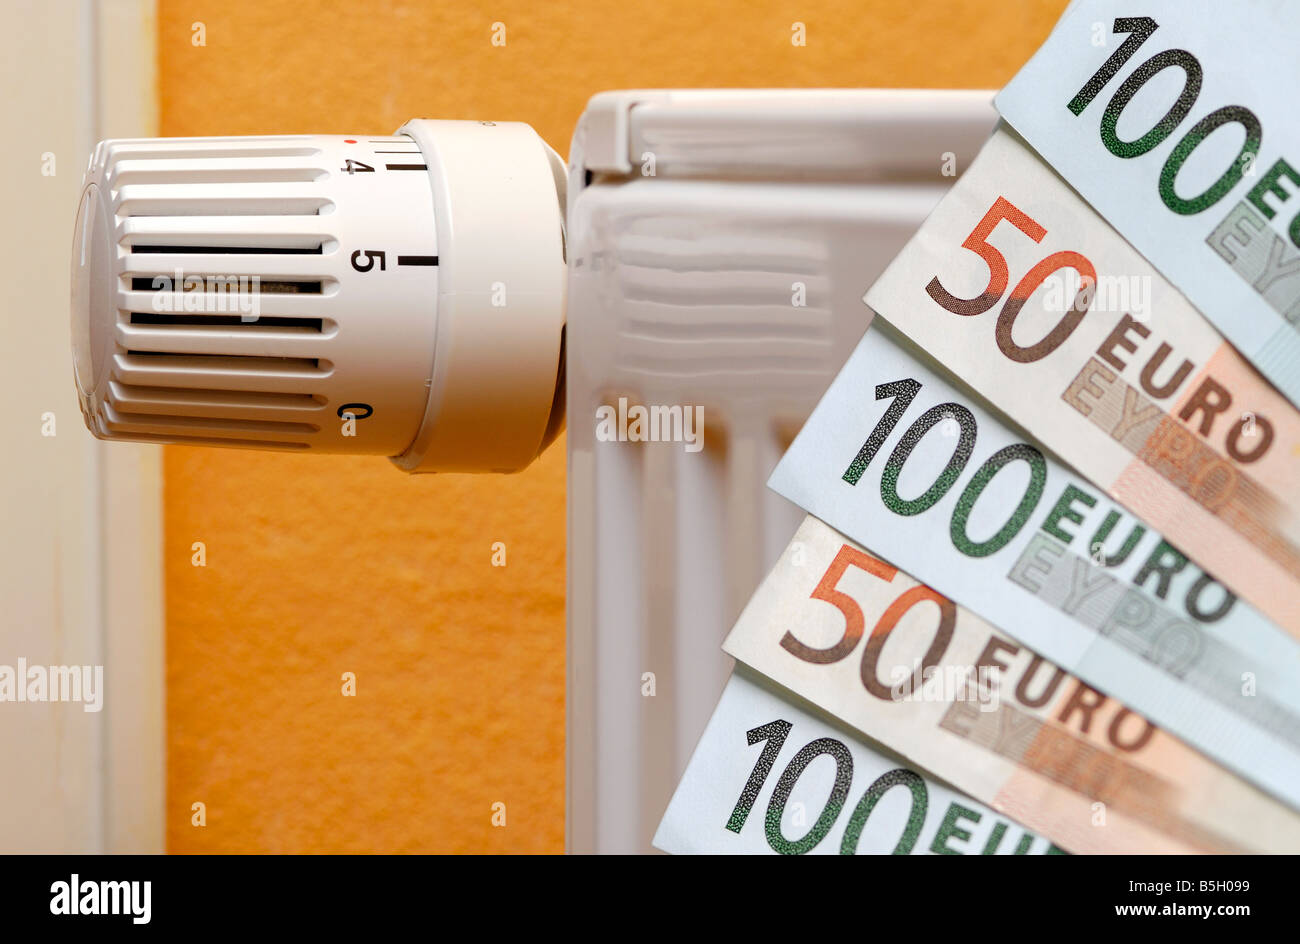 bank notes and a heating, symbol for heating costs - Stock Image